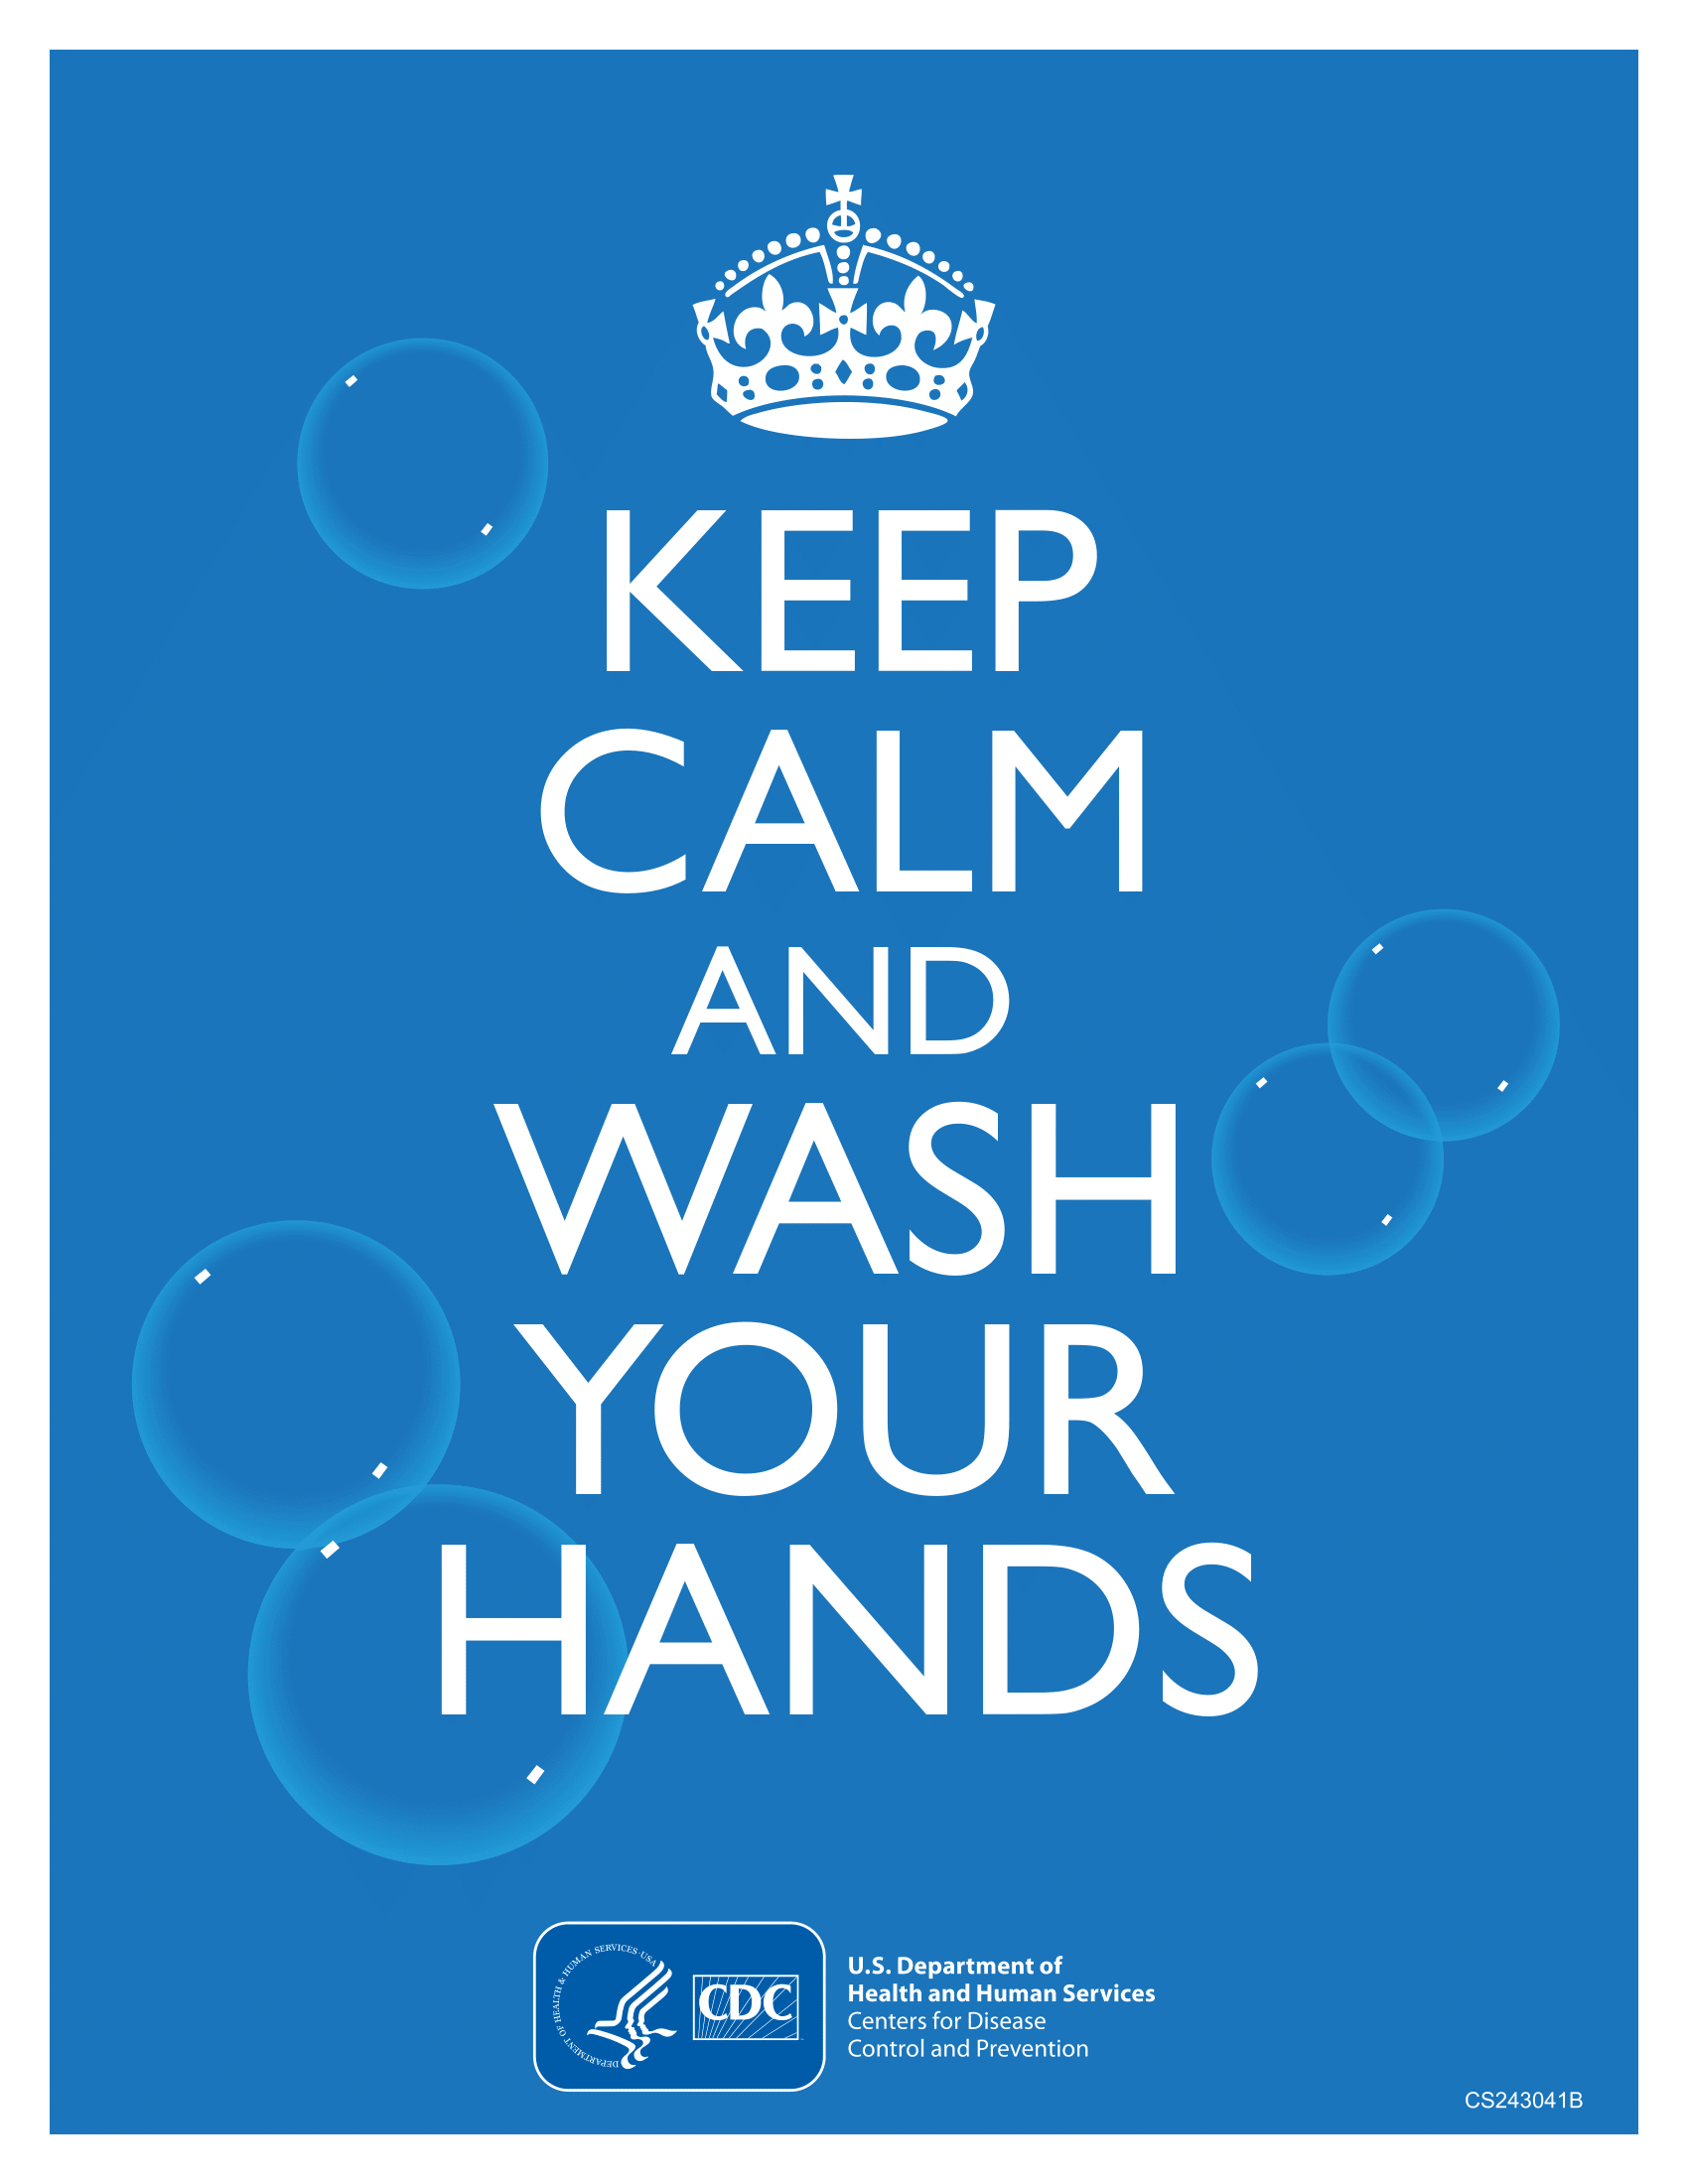 Covid 19 Coronavirus Educator Resources Hand washing hand sanitizer wash your hands, hygiene, cleaning, lotion, hand soap, cartoon, hand model, drawing png. covid 19 coronavirus educator resources